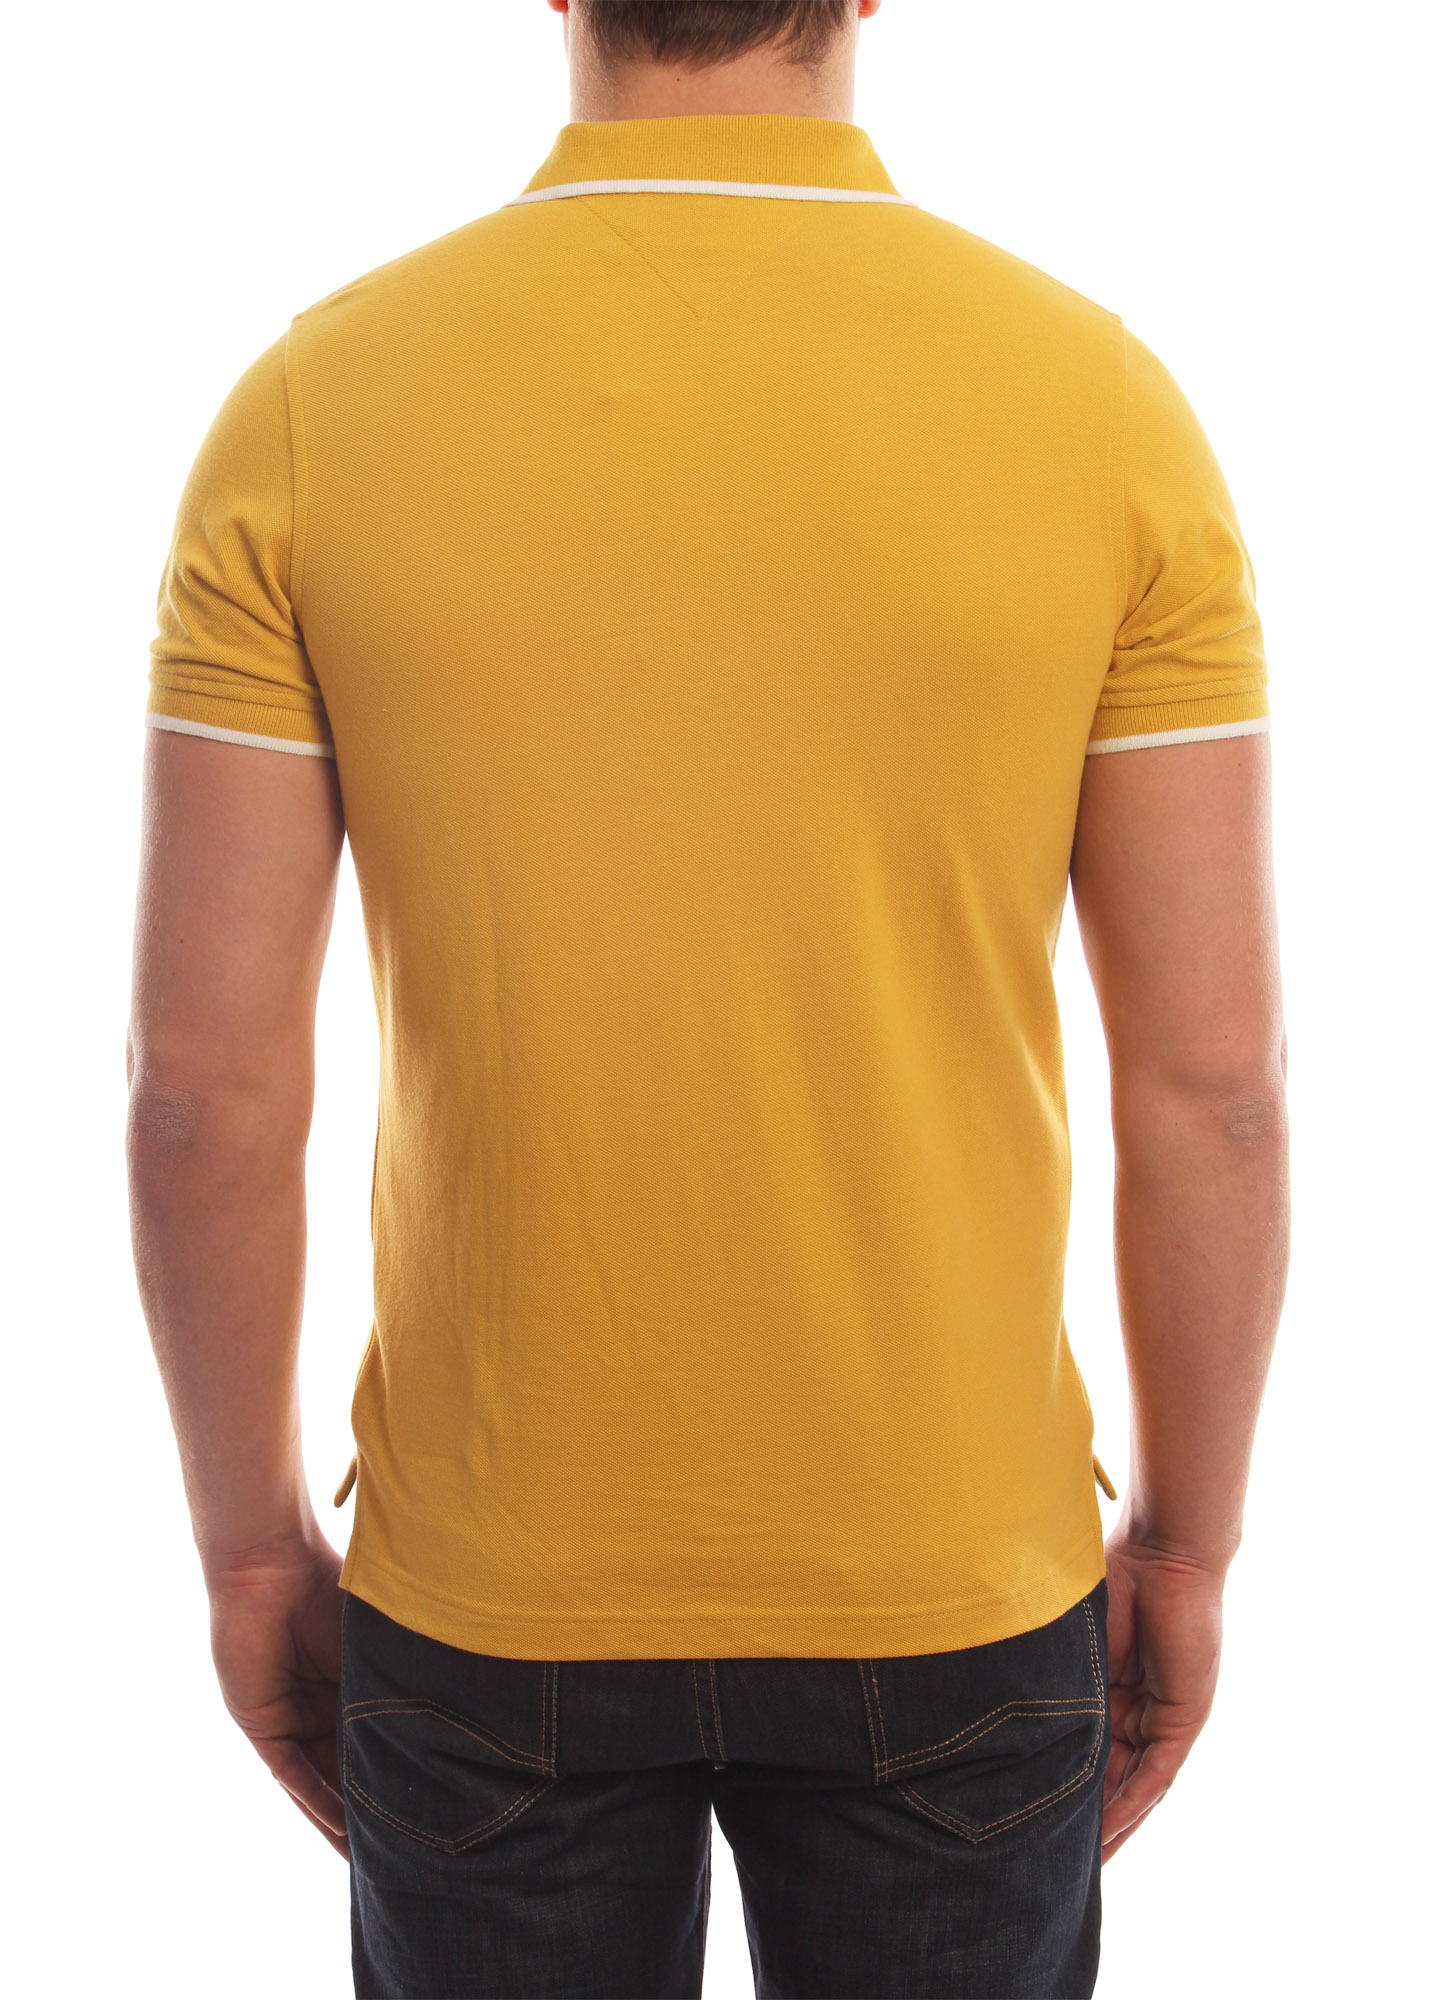 Tommy hilfiger polo t shirt clothing store kokos for Tommy hilfiger shirt size